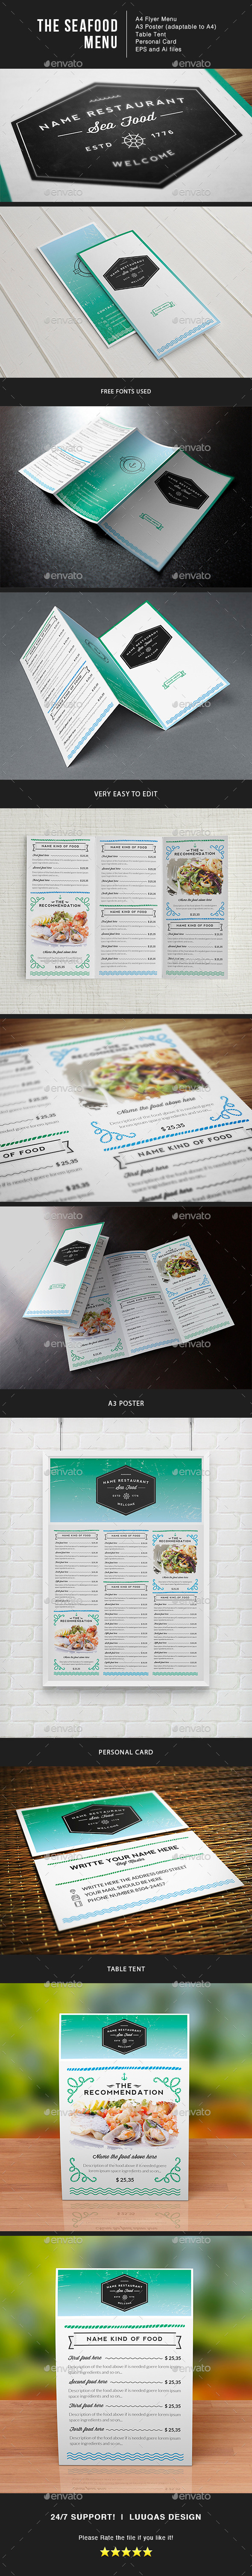 Sea Food Menu Identity Illustrator Template - Food Menus Print Templates